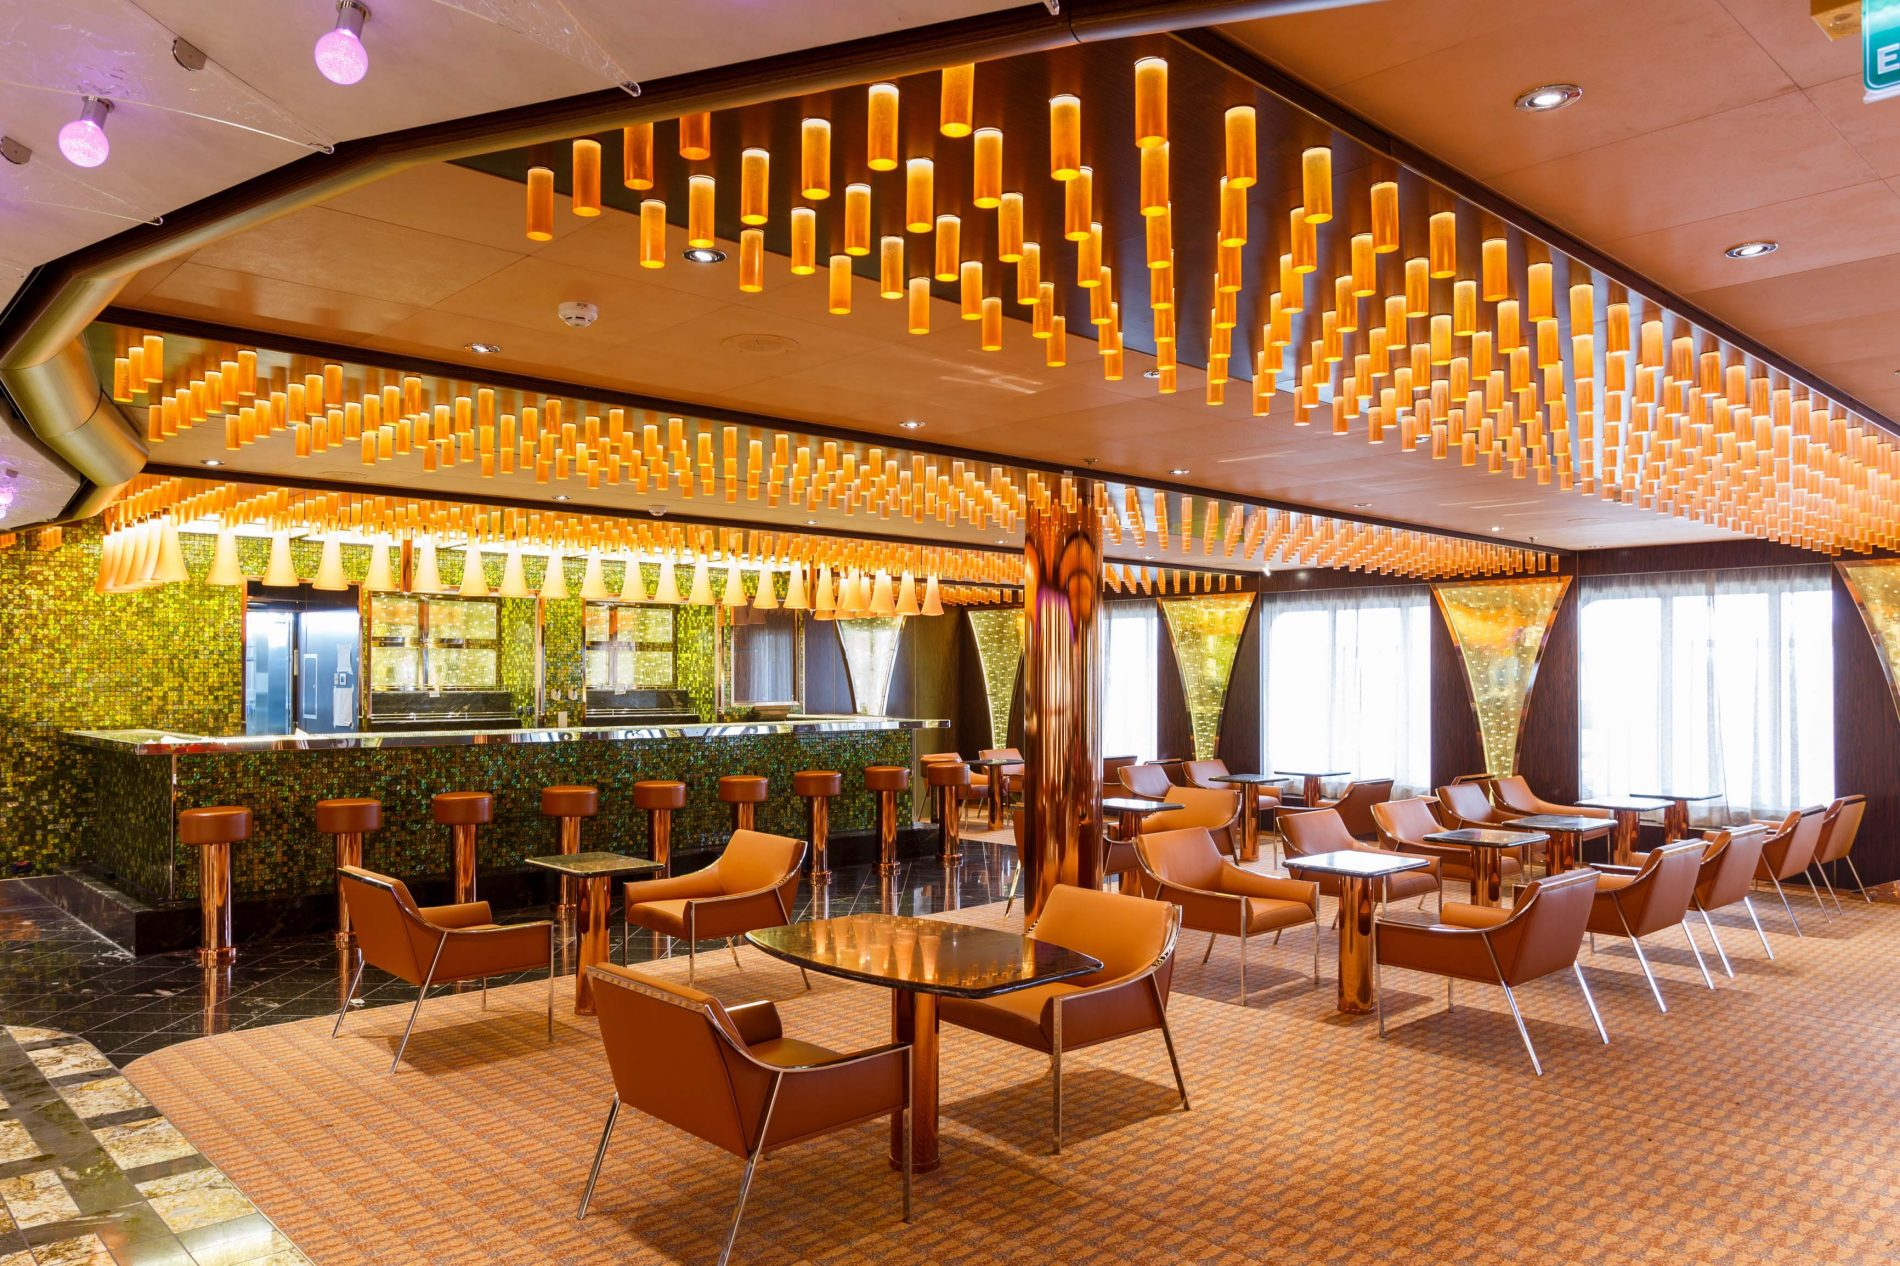 Costa Diadema Interior